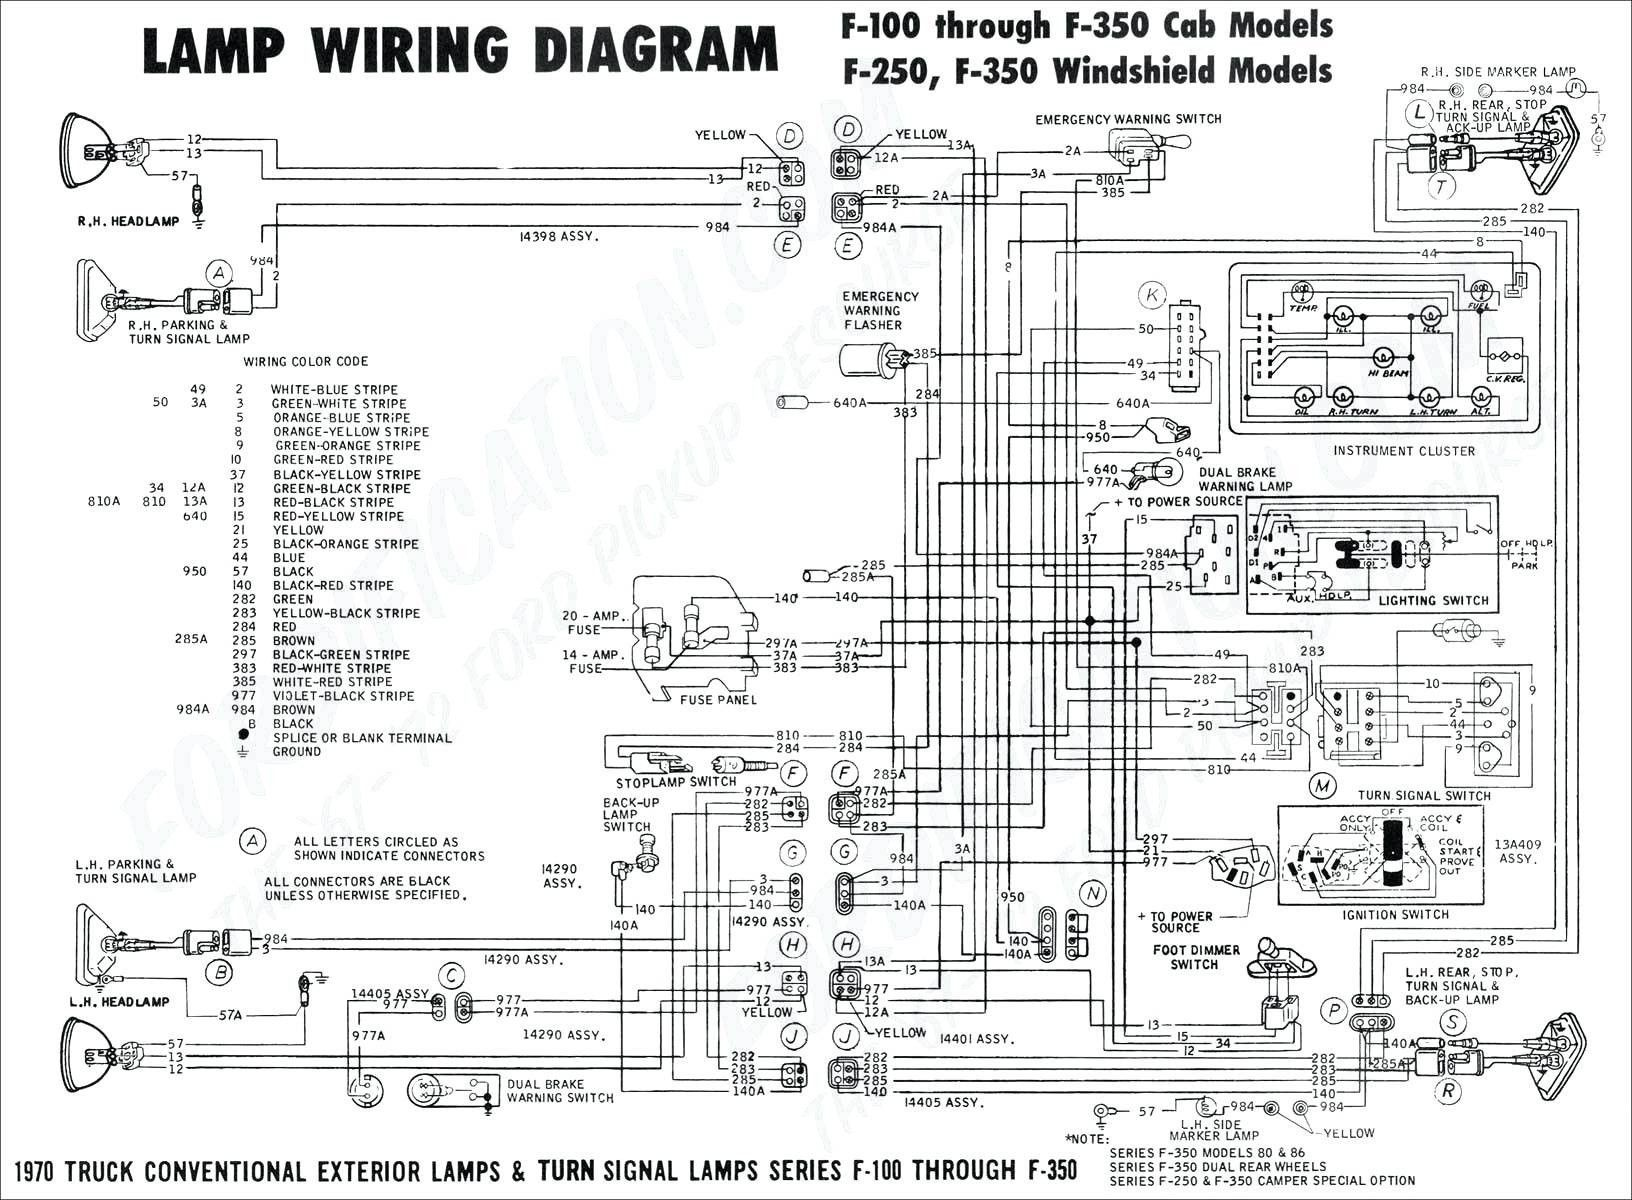 Unique Northstar Generator Wiring Diagram Trailer Wiring Diagram Electrical Wiring Diagram Diagram